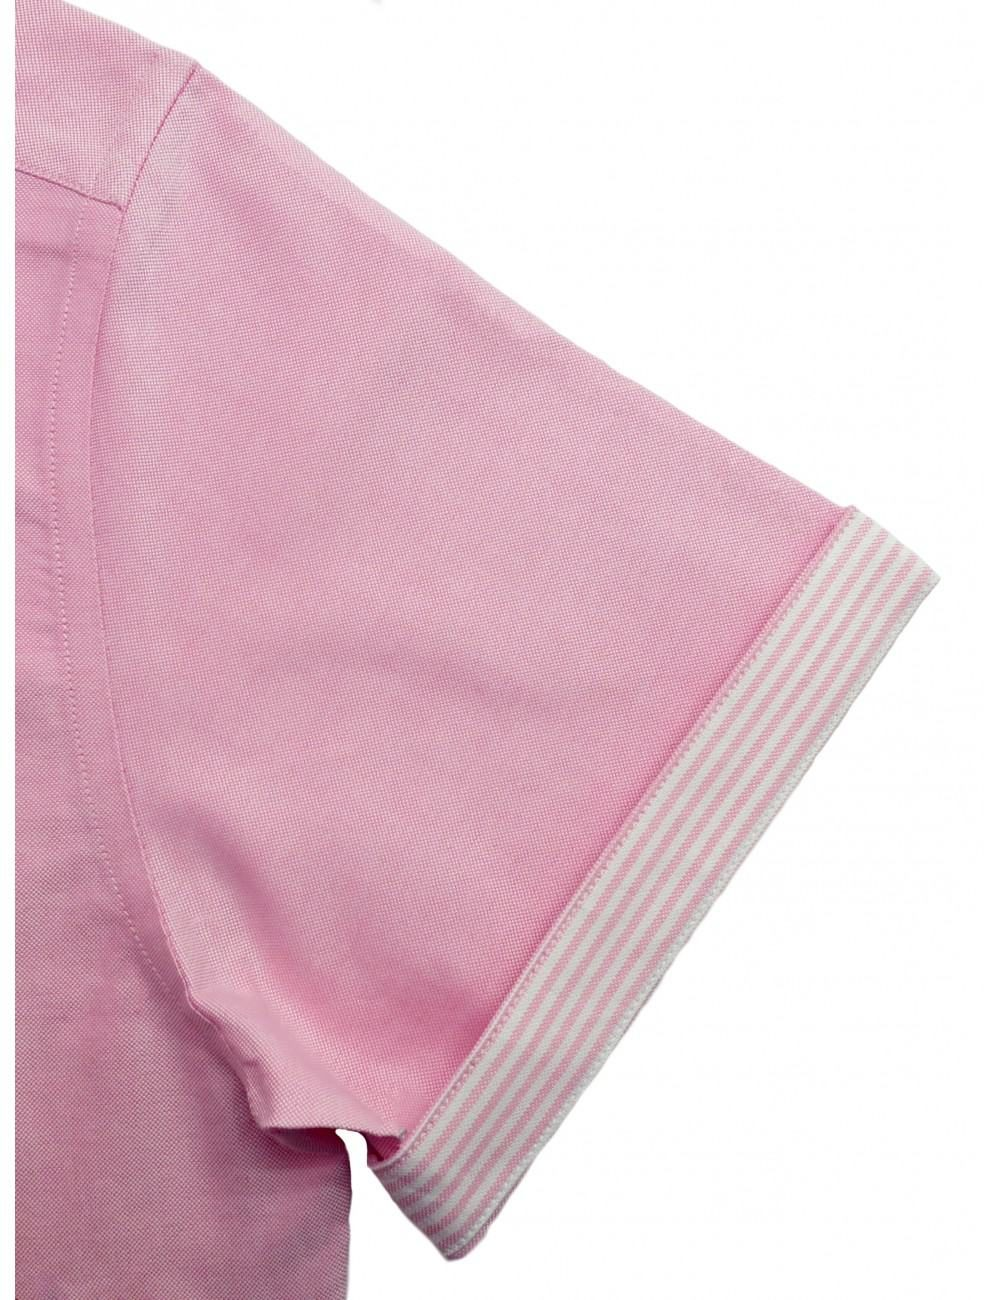 RF Solid Pink Oxford 100% Cotton Double Ply Short Sleeve Shirt RF8SNB16.6